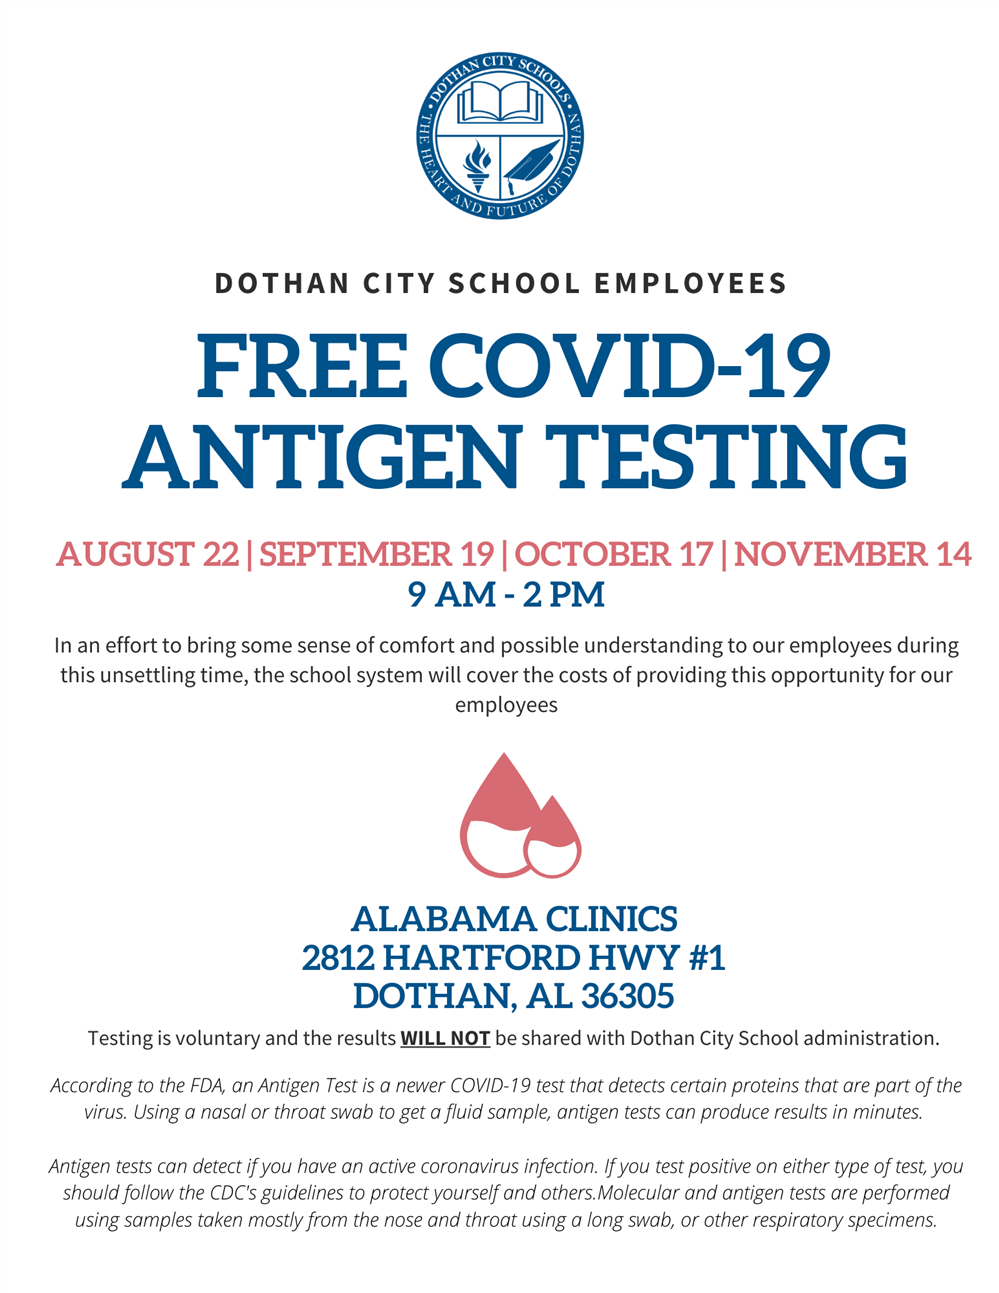 Free COVID-19 Antigen Testing for DCS Employees